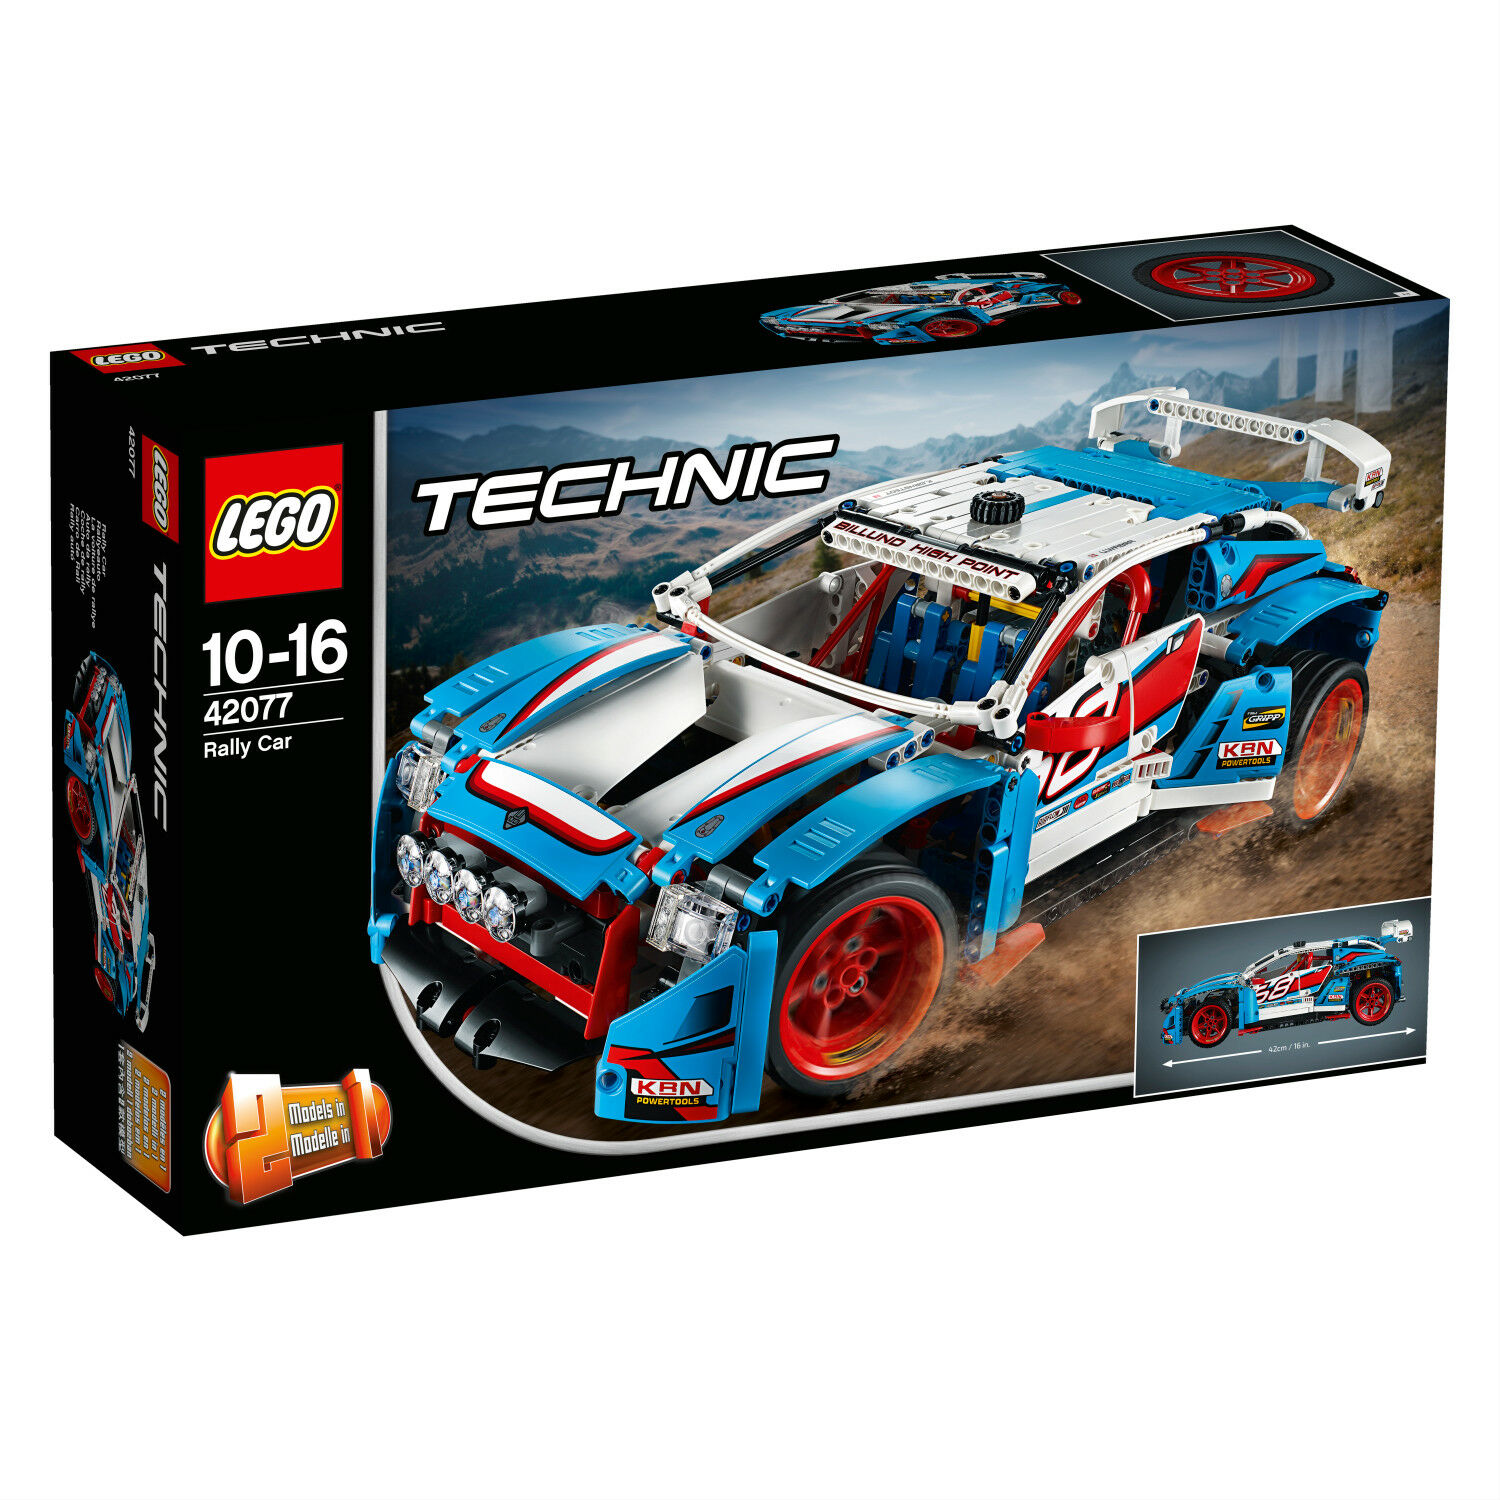 LEGO Technic 42077 Rallyeauto La voiture de rallye Rally Car N1/18